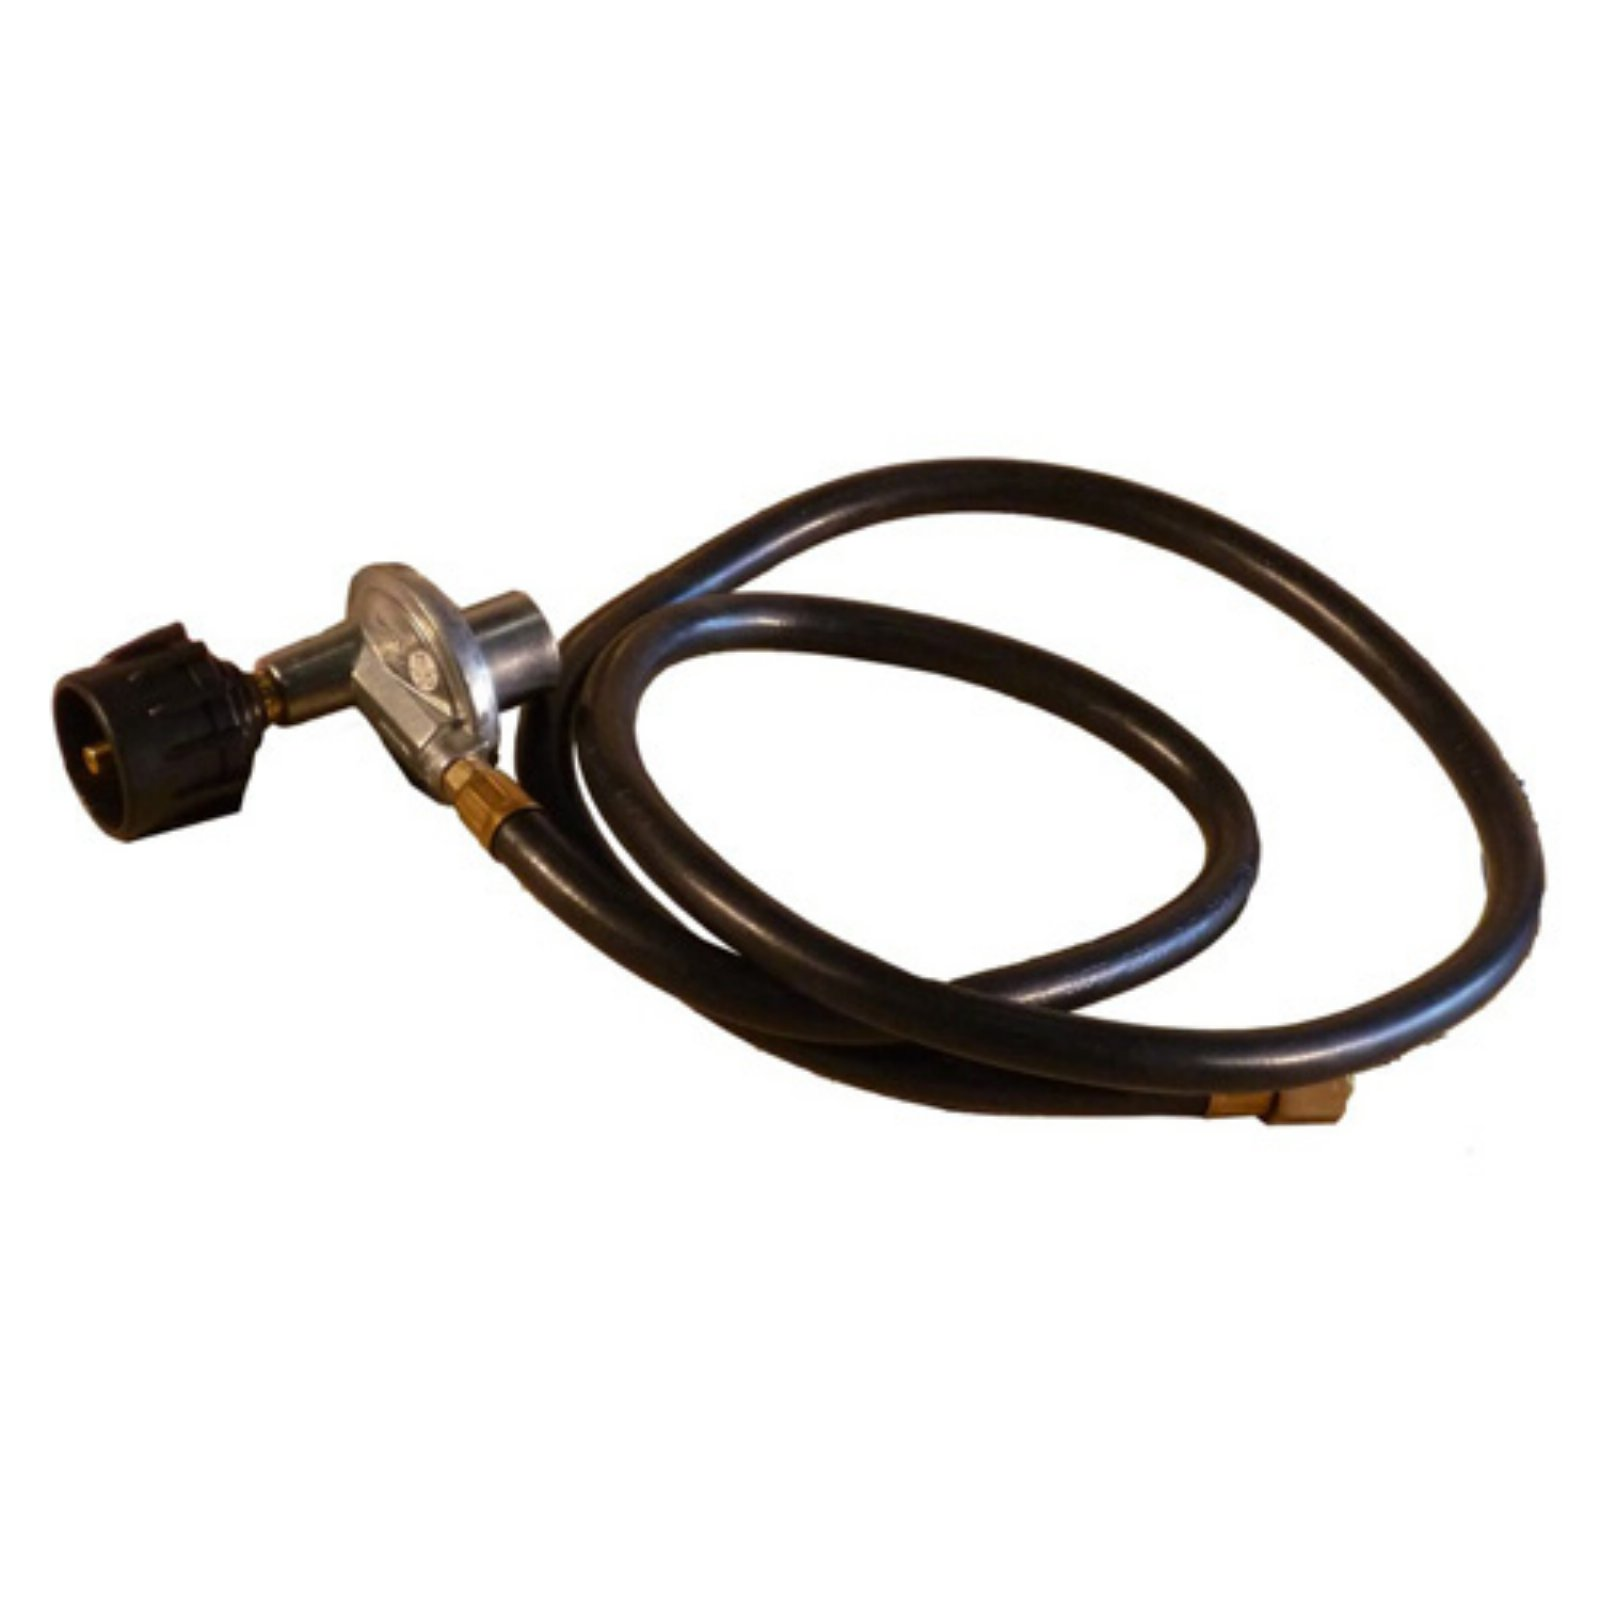 Tretco 24 in. Connection Hose with Regulator